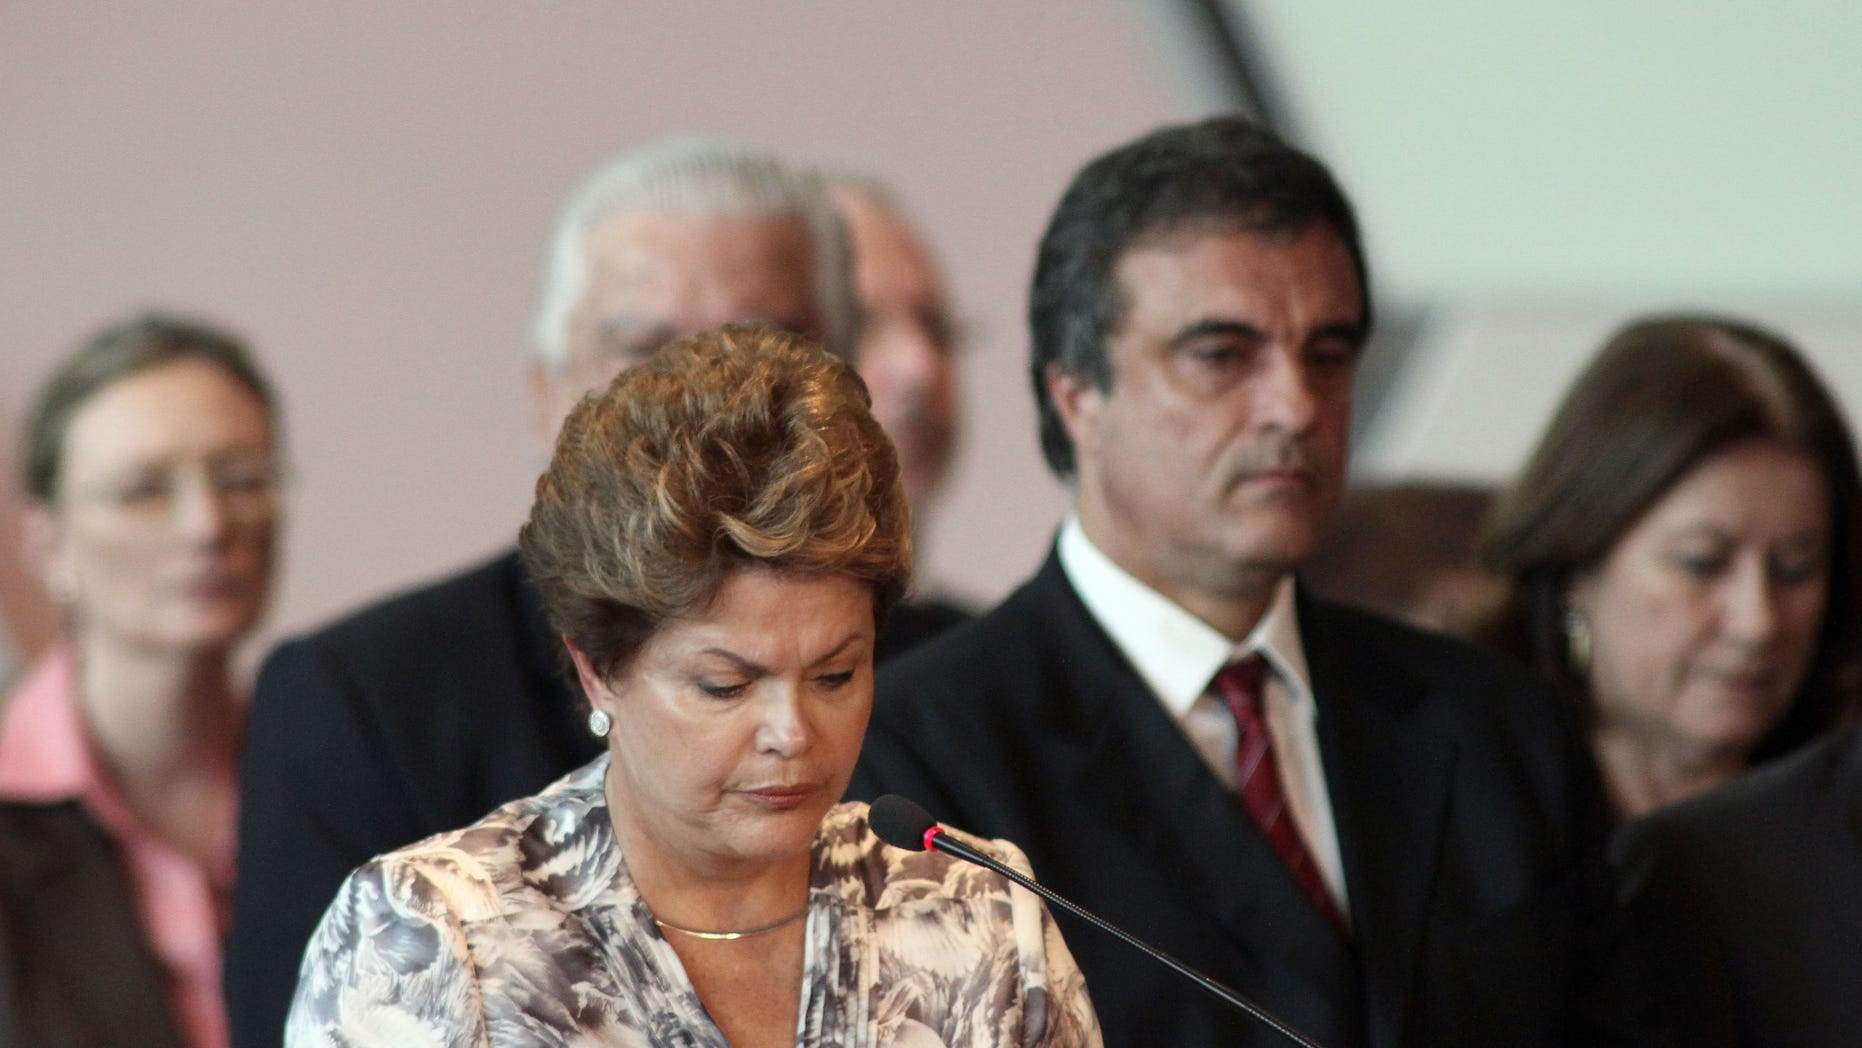 Brazil's President Dilma Rousseff, front, stands a minute of silence for the victims of a deadly fire at a nightclub during a meeting with mayors who recently took office in Brasilia, Brazil, Monday, Jan. 28, 2013. A blaze raced through a crowded nightclub in southern Brazil early Sunday, killing more than 230 people as the air filled with deadly smoke and panicked party-goers stampeded toward the exits, police and witnesses said. (AP Photo/Eraldo Peres)